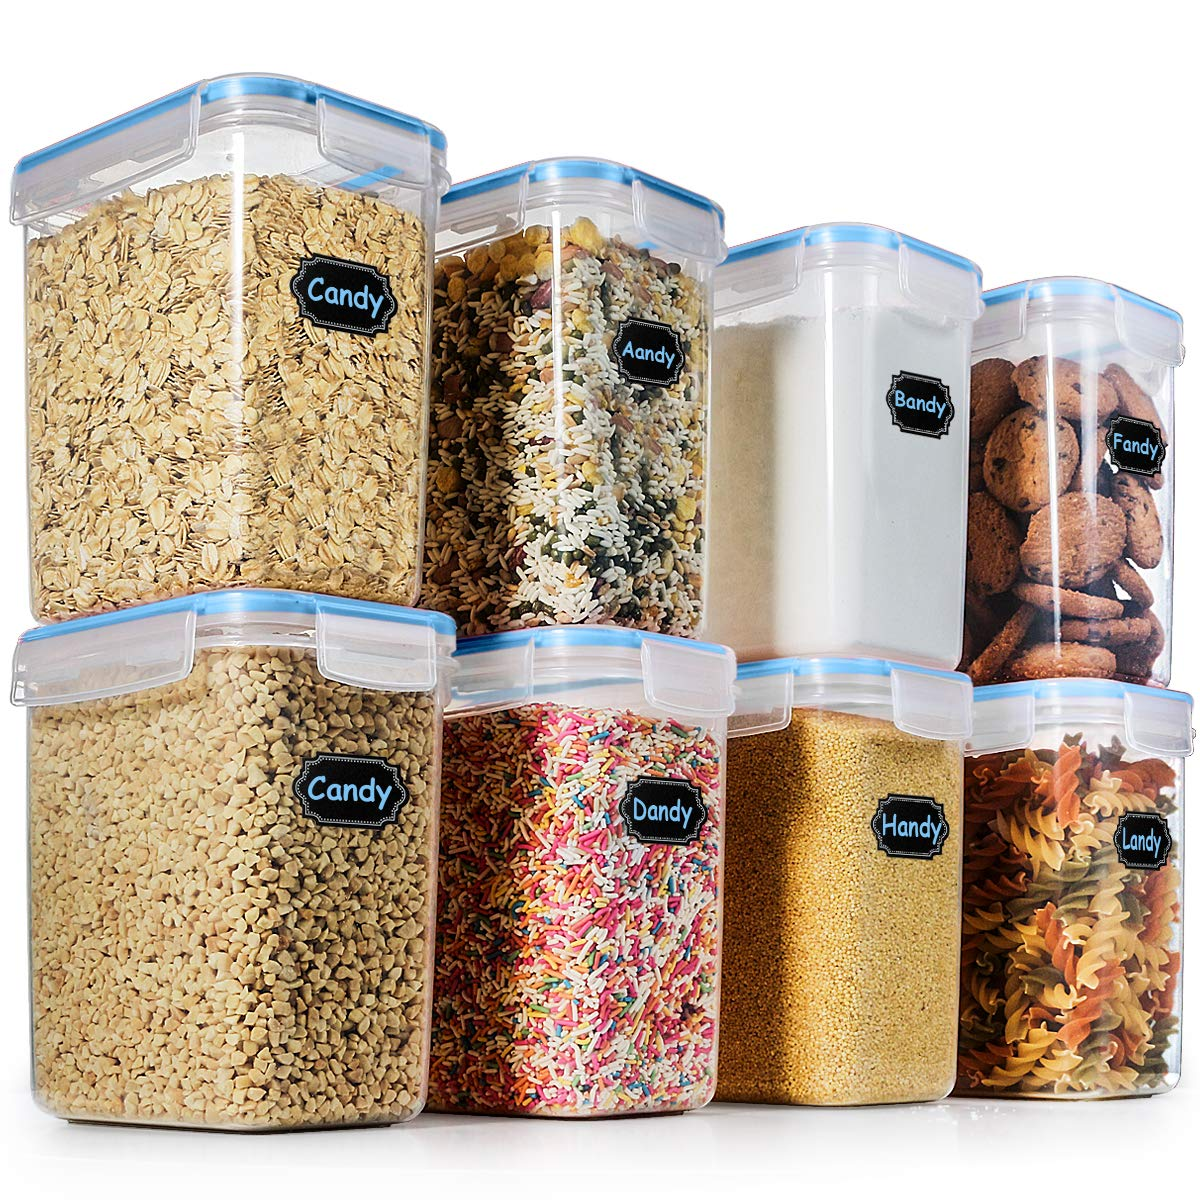 Food Storage Containers Airtight Containers, Estmoon Cereal & Dry Plastic Containers for Cereal Flour Rice Snacks Sugar, Leak Proof with Locking Lids - Set of 8 (54.66 oz / 1.6L)